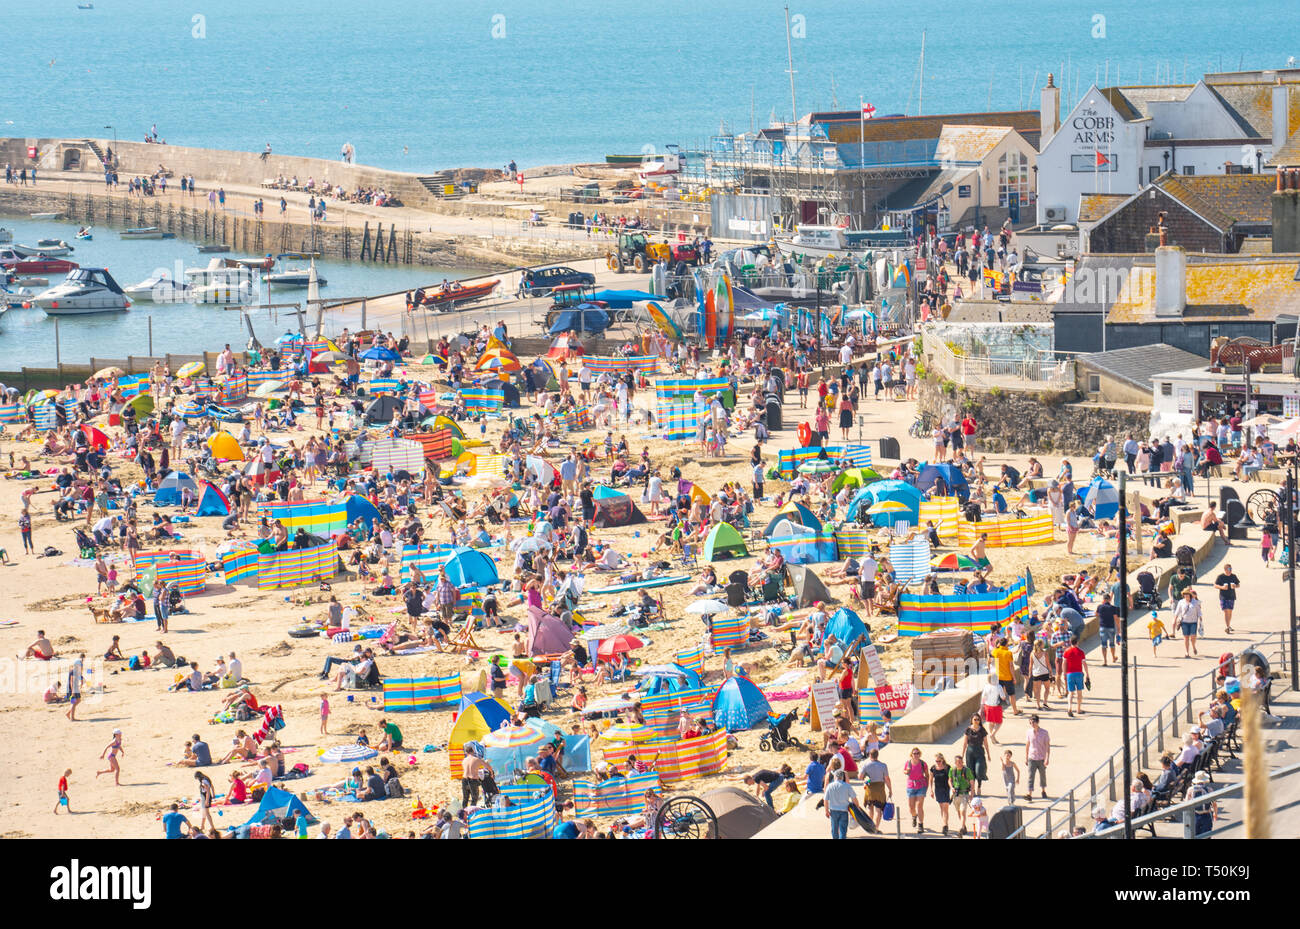 Lyme Regis, Dorset, UK. 20th April 2019. UK Weather: Holiday makers and beachgoers pack the pretty beach at the seaside resort of Lyme Regis to bask in sizzling hot Easter Saturday sunshine on the hottest day of the year so far.  Sunbathers enjoy bright blue skies as they soak up the sun in record breaking Easter Bank Holiday temperatures and the hottest Easter weekend for 70 years. The town's main beach is packed by 10.30 am. Credit: Celia McMahon/Alamy Live News. - Stock Image